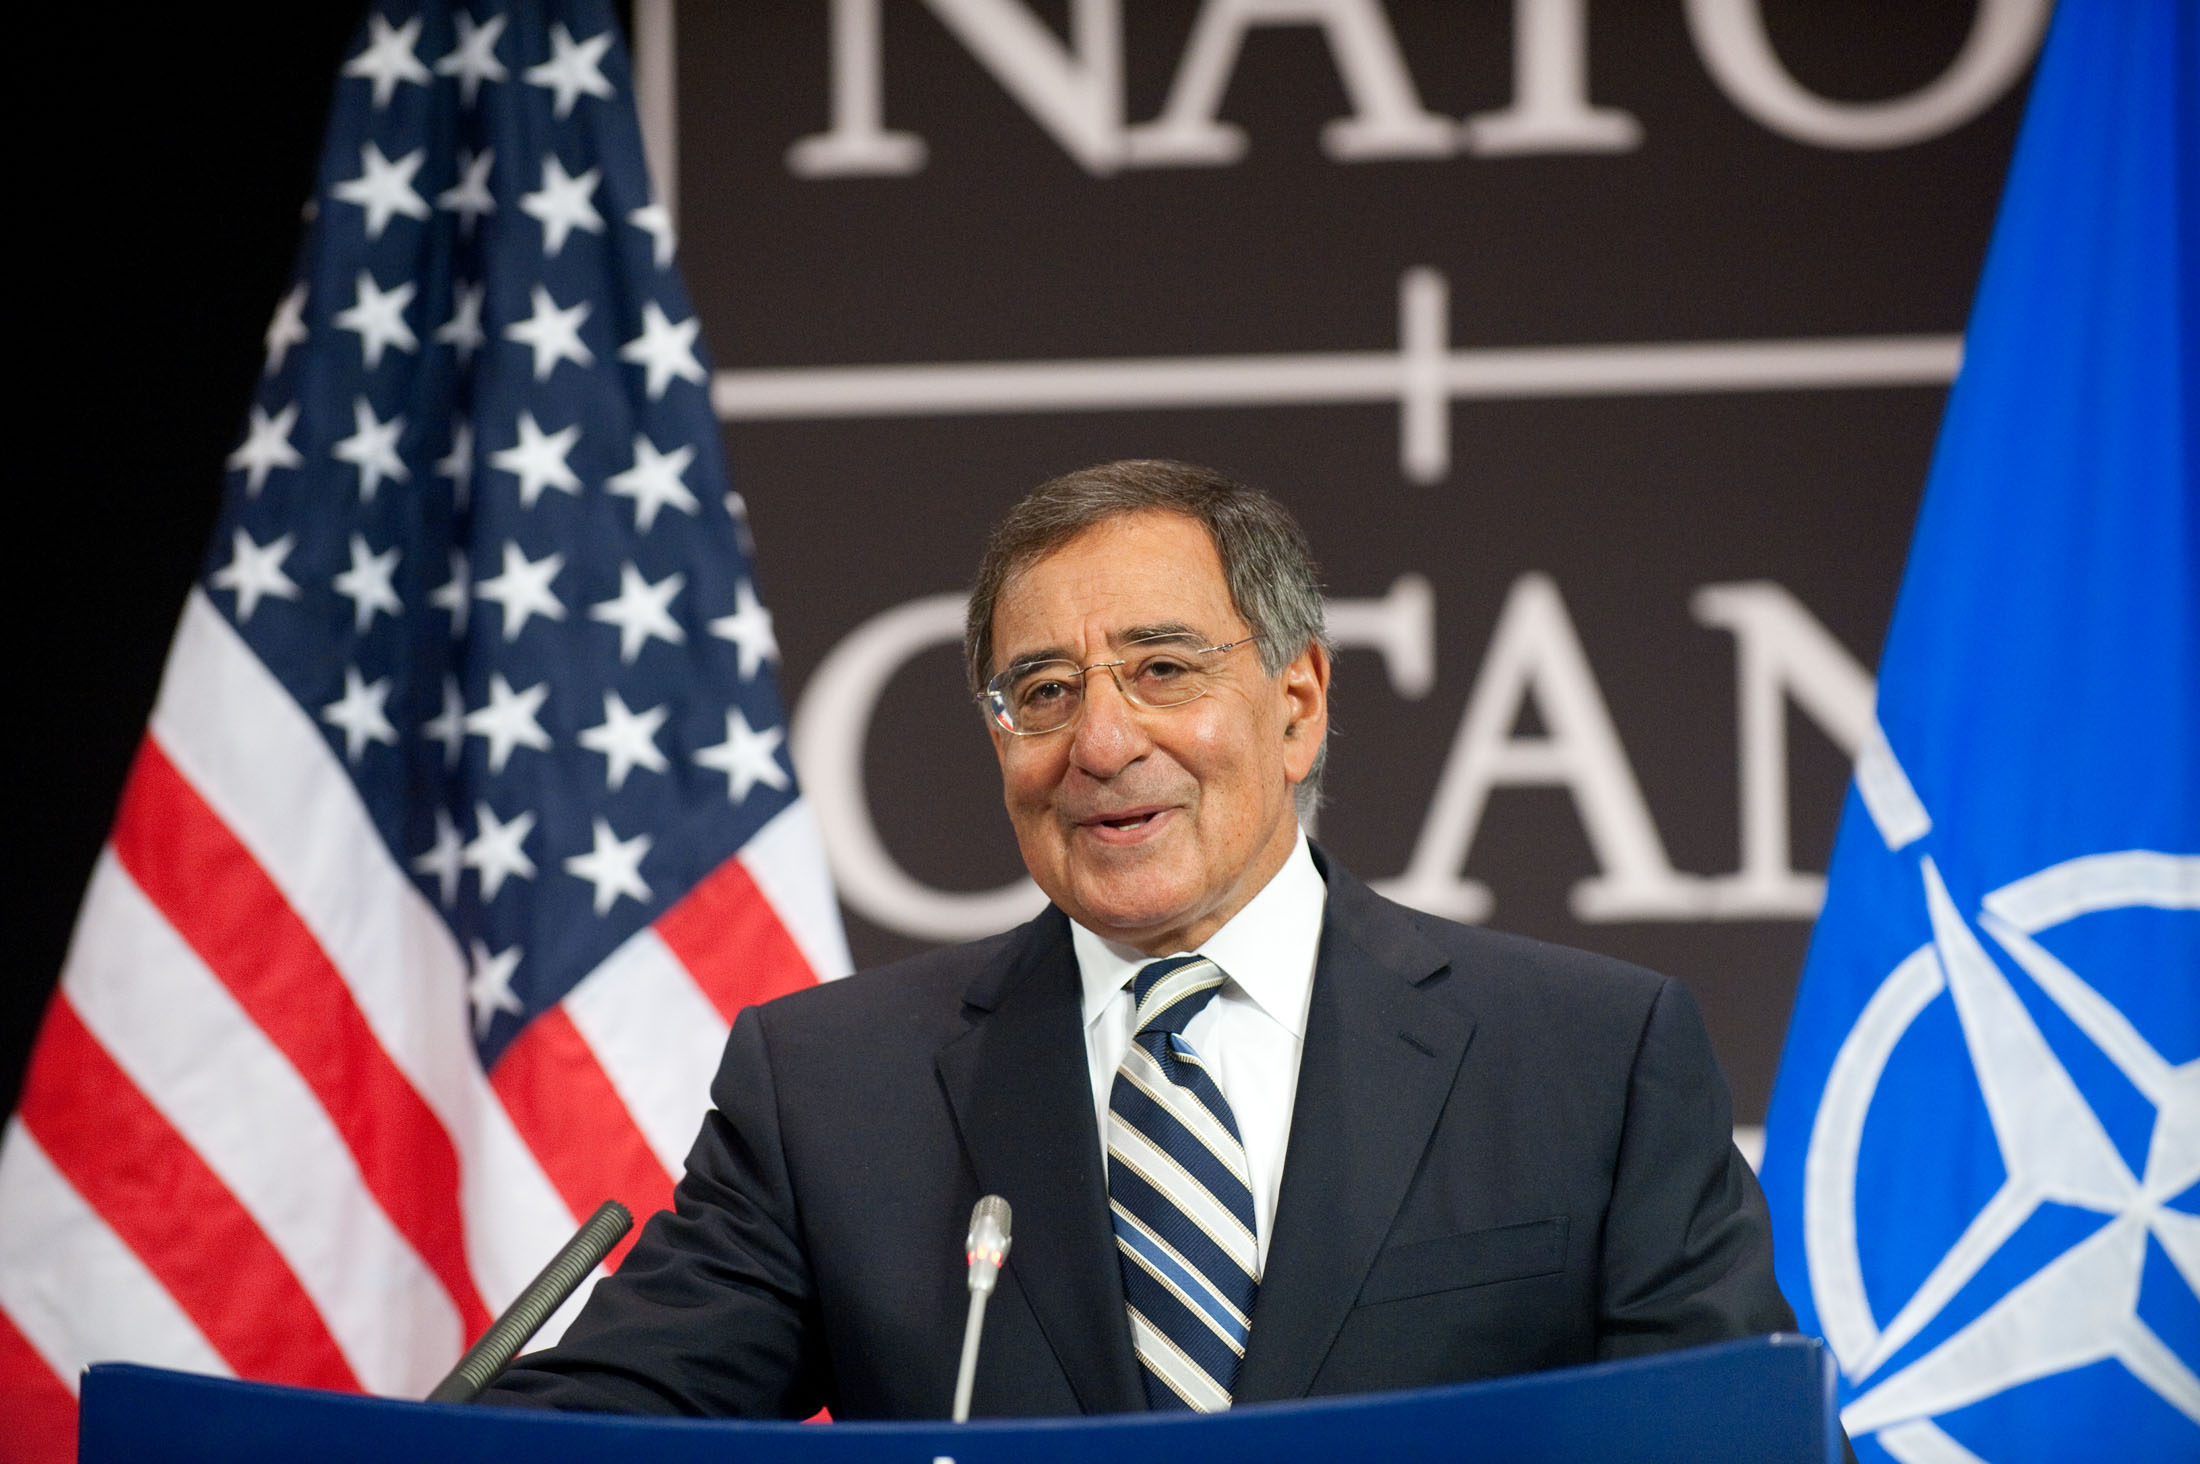 Panetta says mission accomplished in Libya ... but not concluded